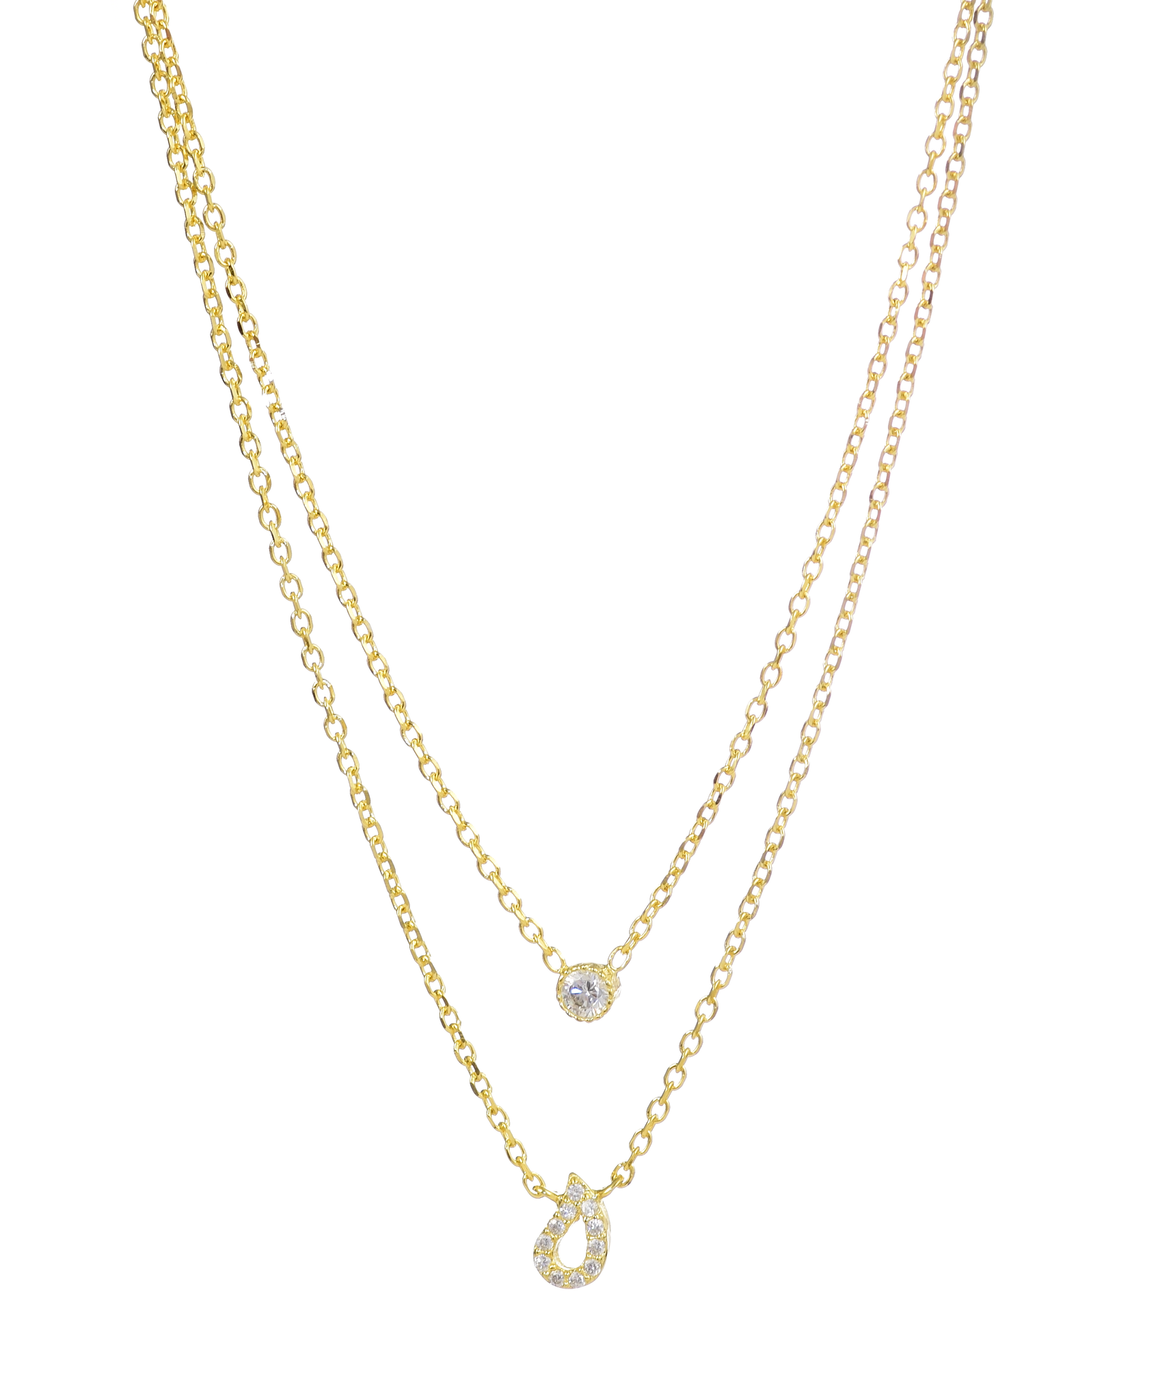 Sterling Silver Gold Plated Layered Necklace with CZ Diamonds - Anny Gabriella NY